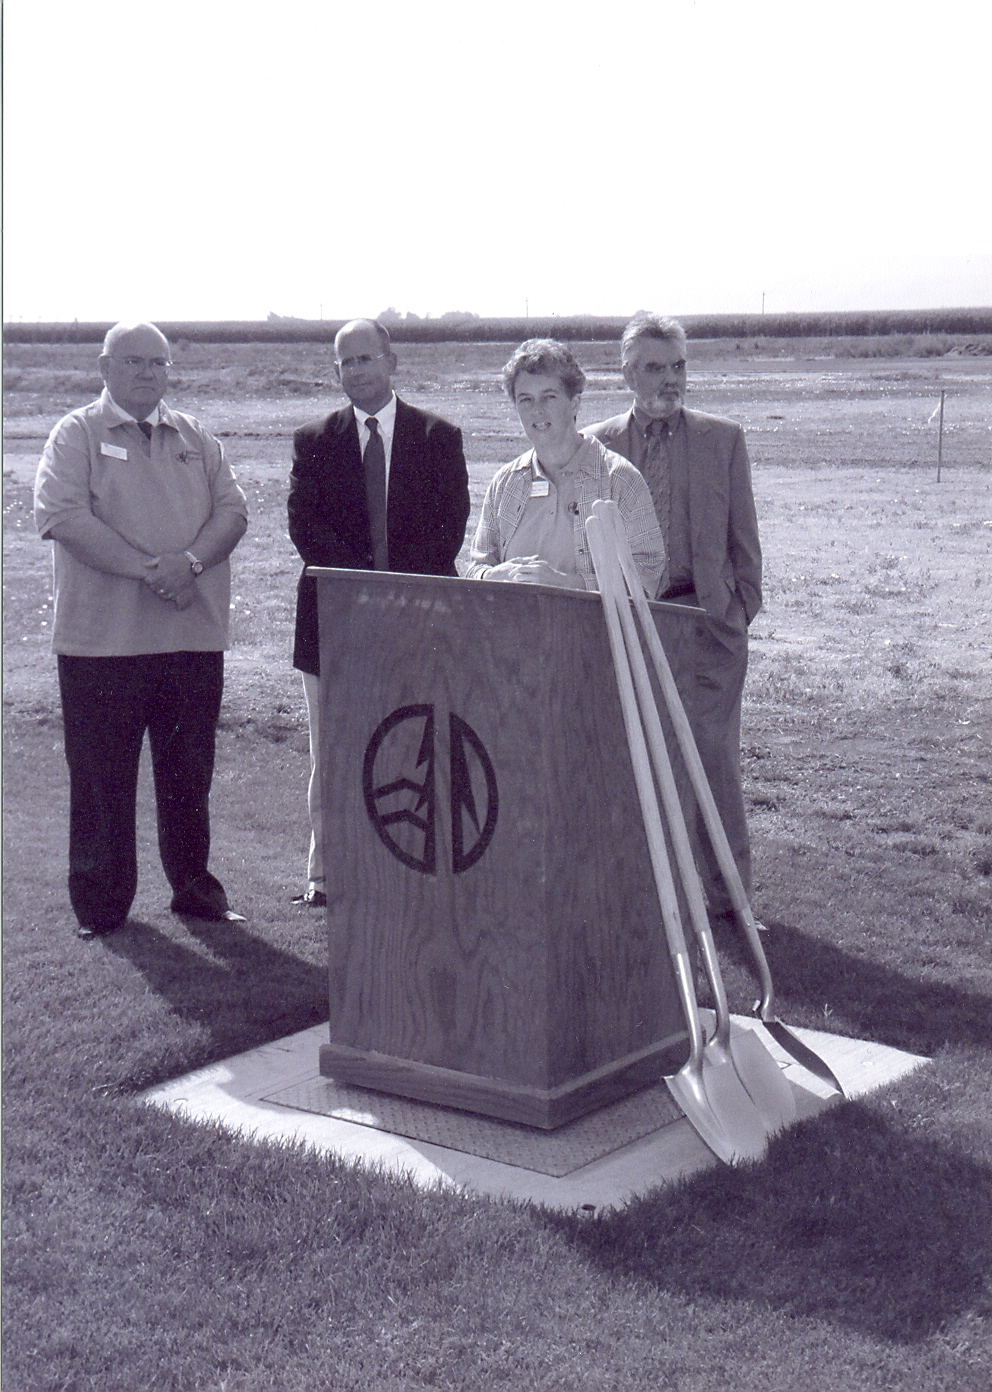 Kathleen Ross, snjm standing at a podium delivering a few words during groundbreaking ceremony at Heritage College